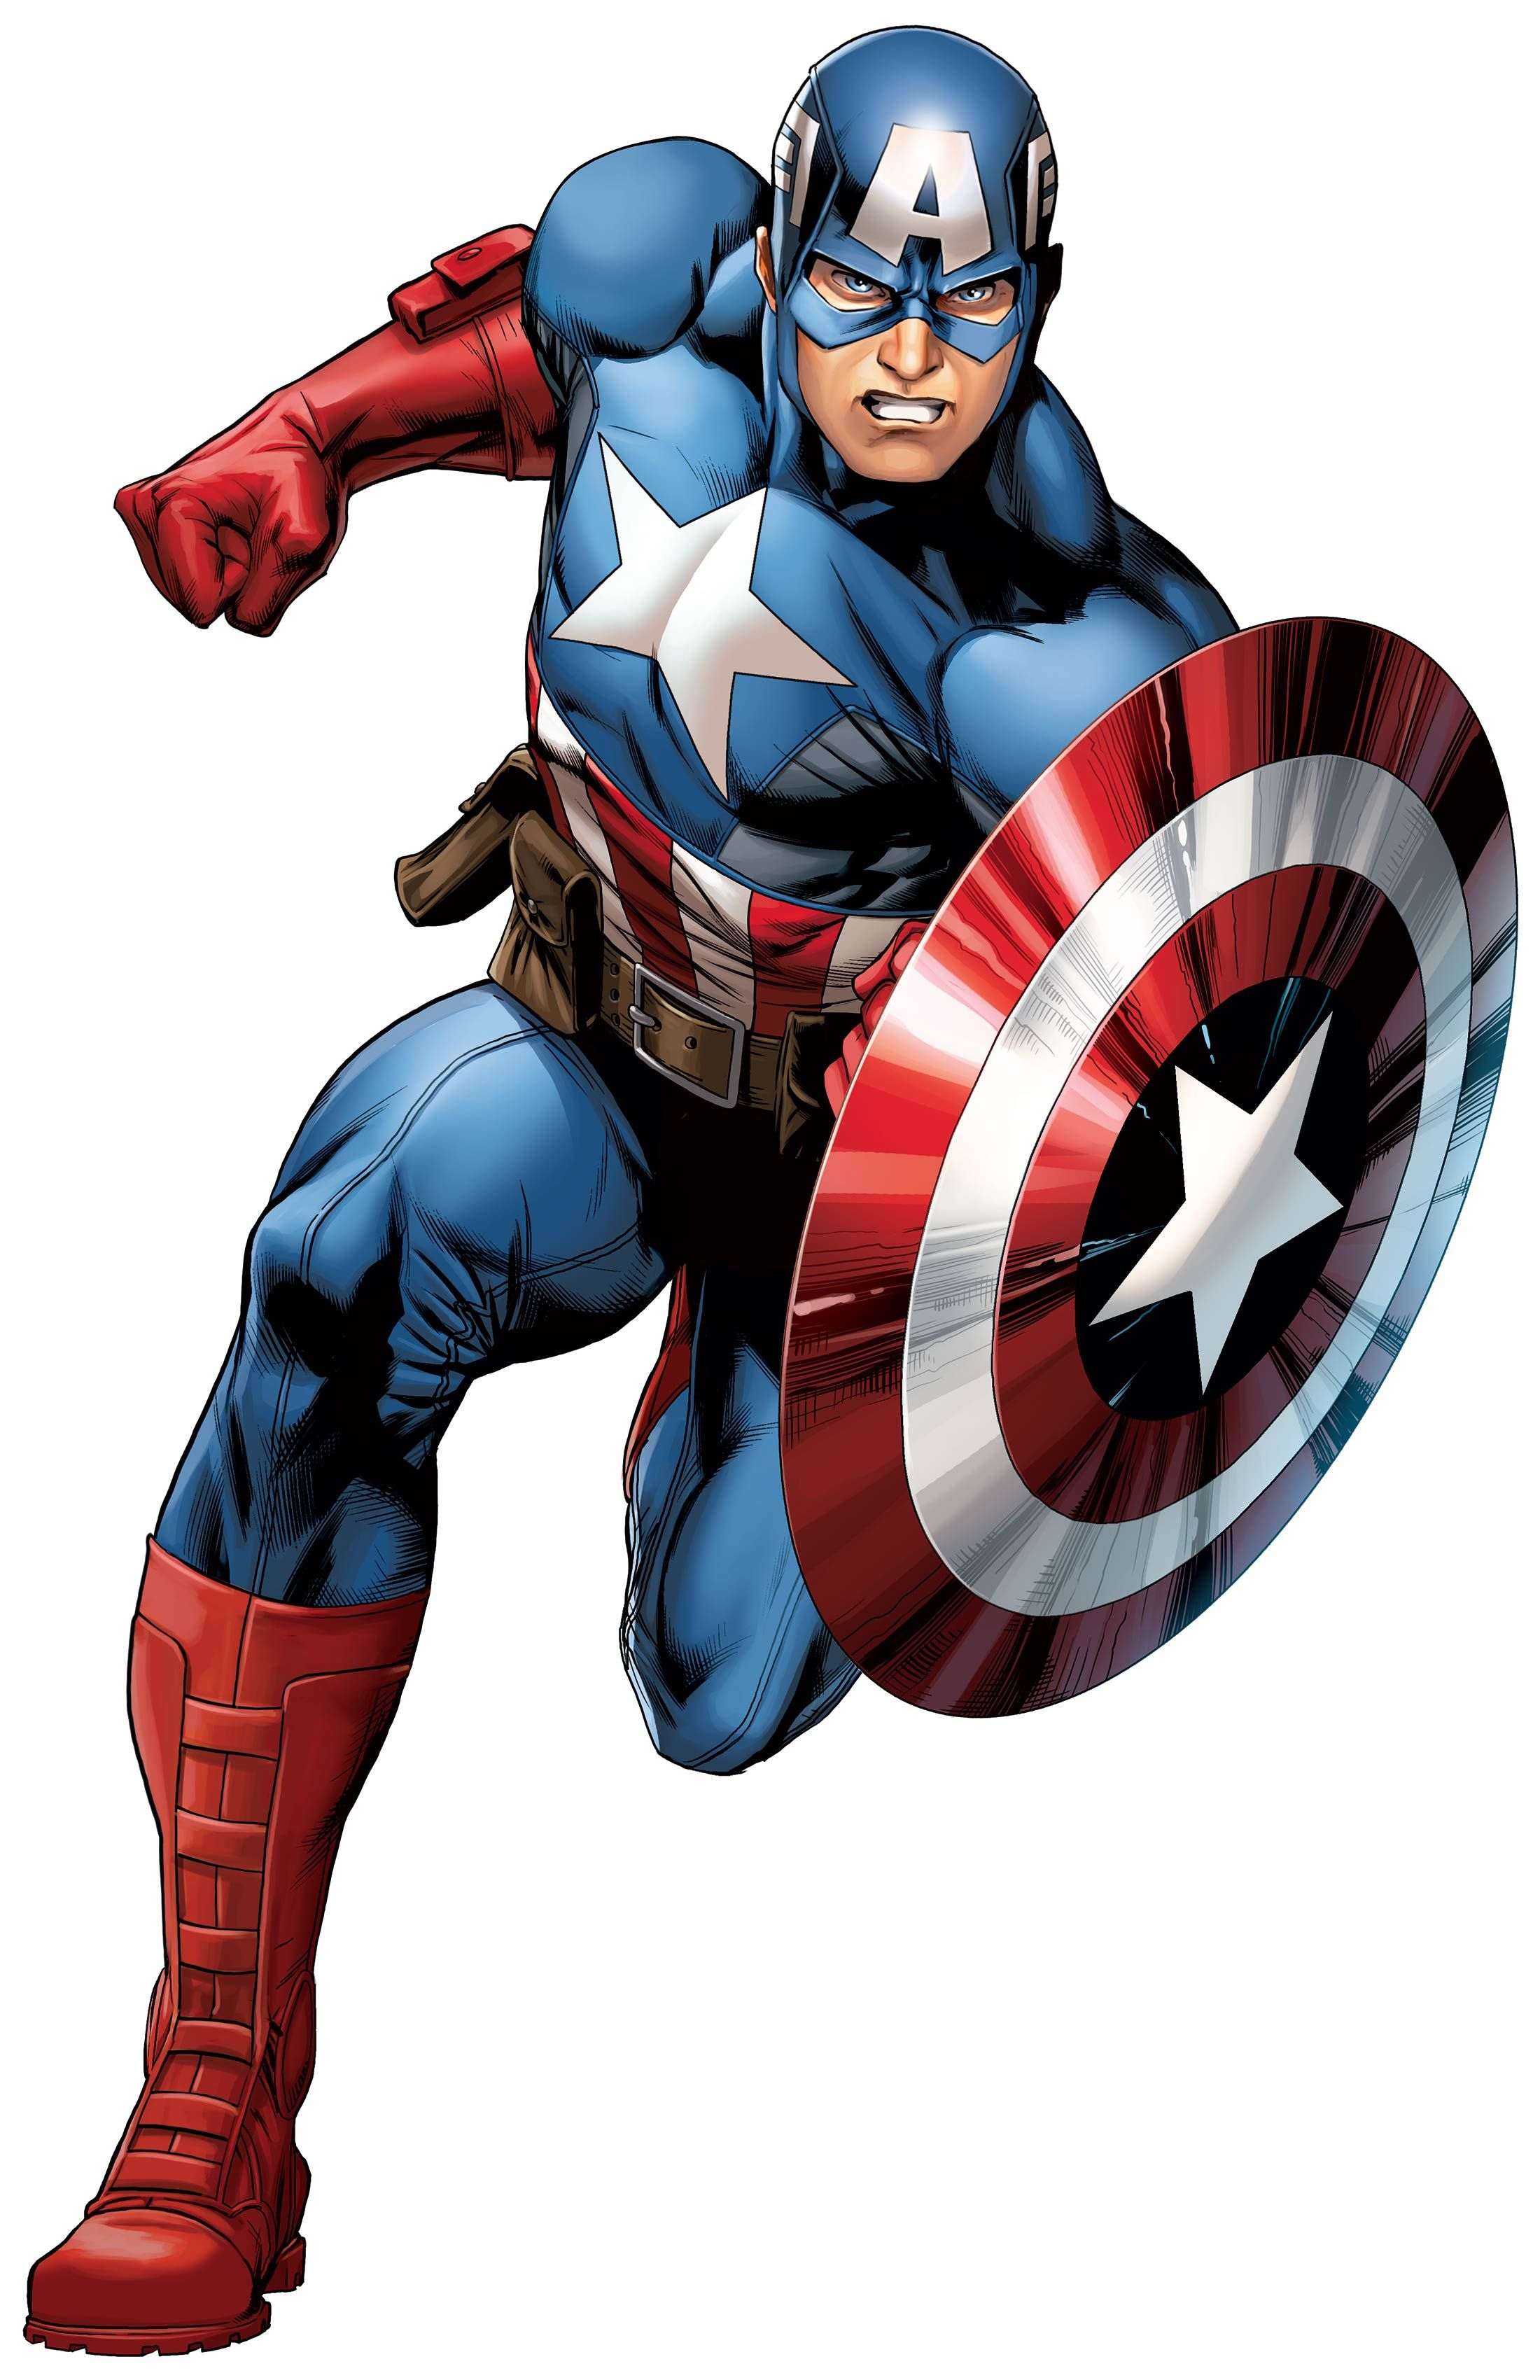 captain america clip art the 5 st r ward of aw yeah rh pinterest com captain america clipart black and white captain america logo clipart